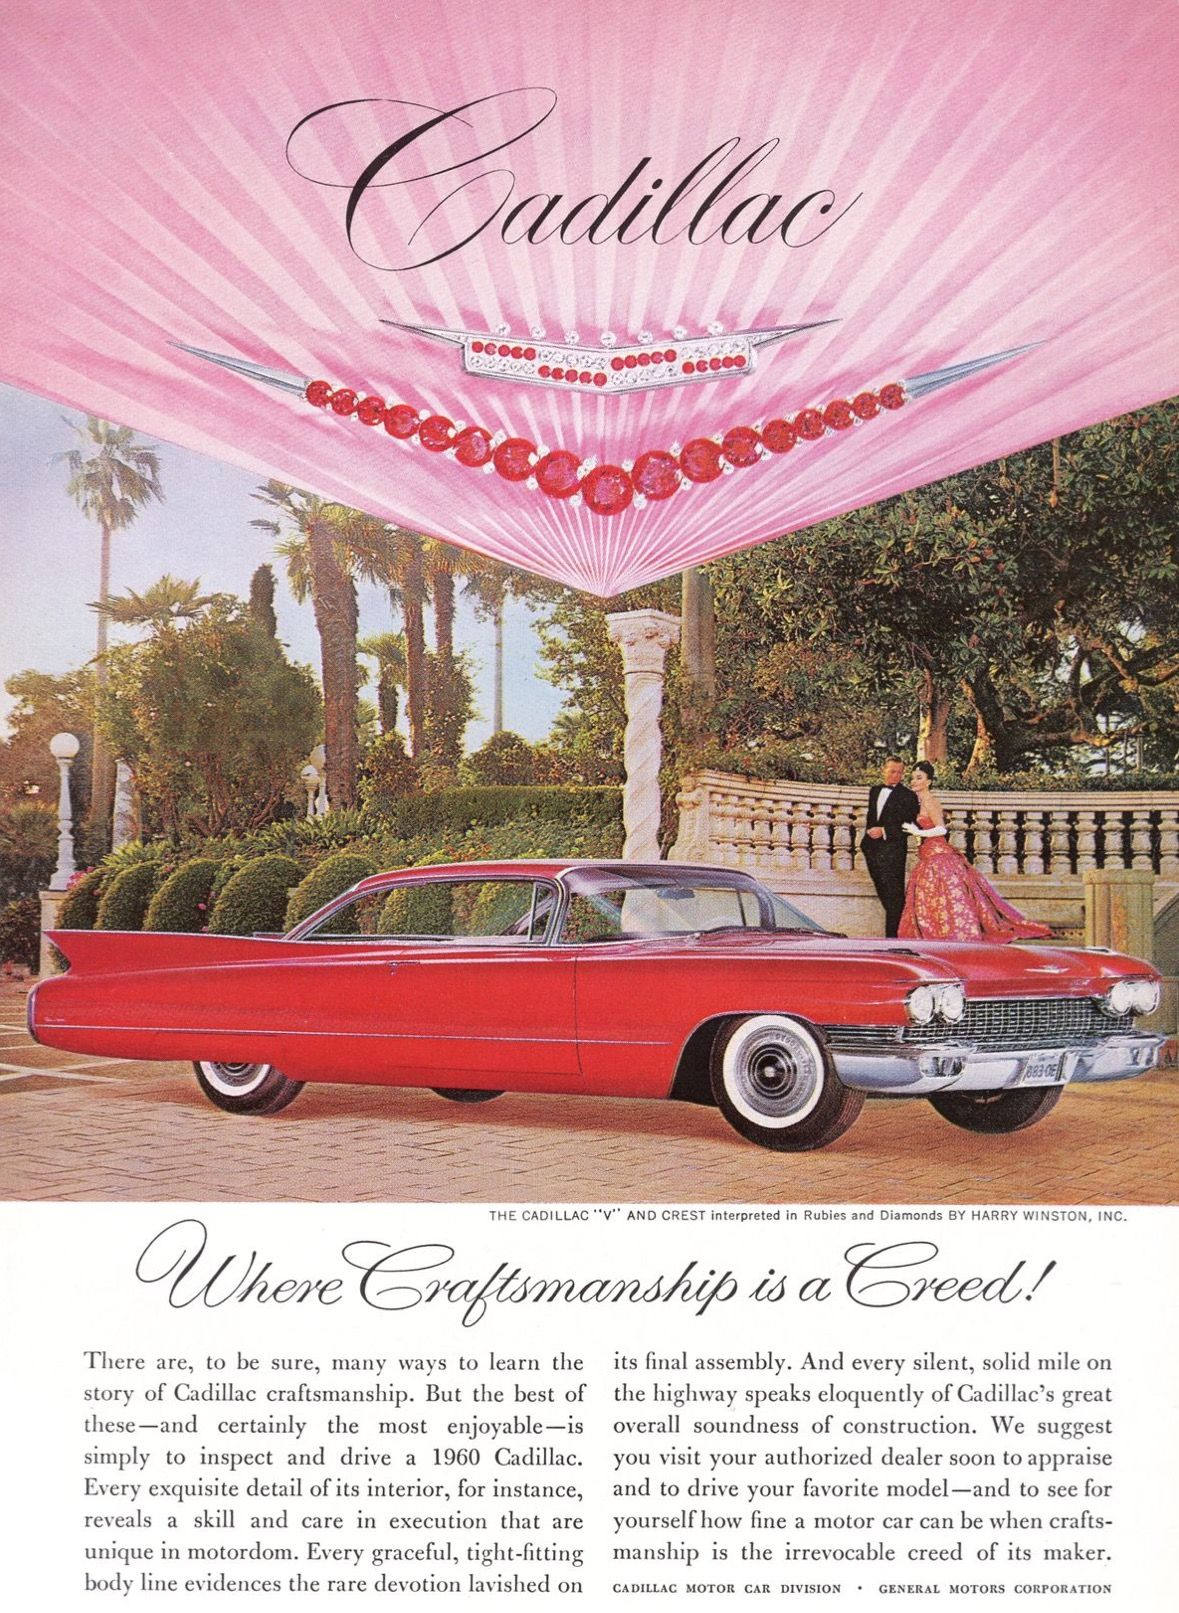 Pin By Mark Hanner On Cadillac Pinterest Cadillac Cars And